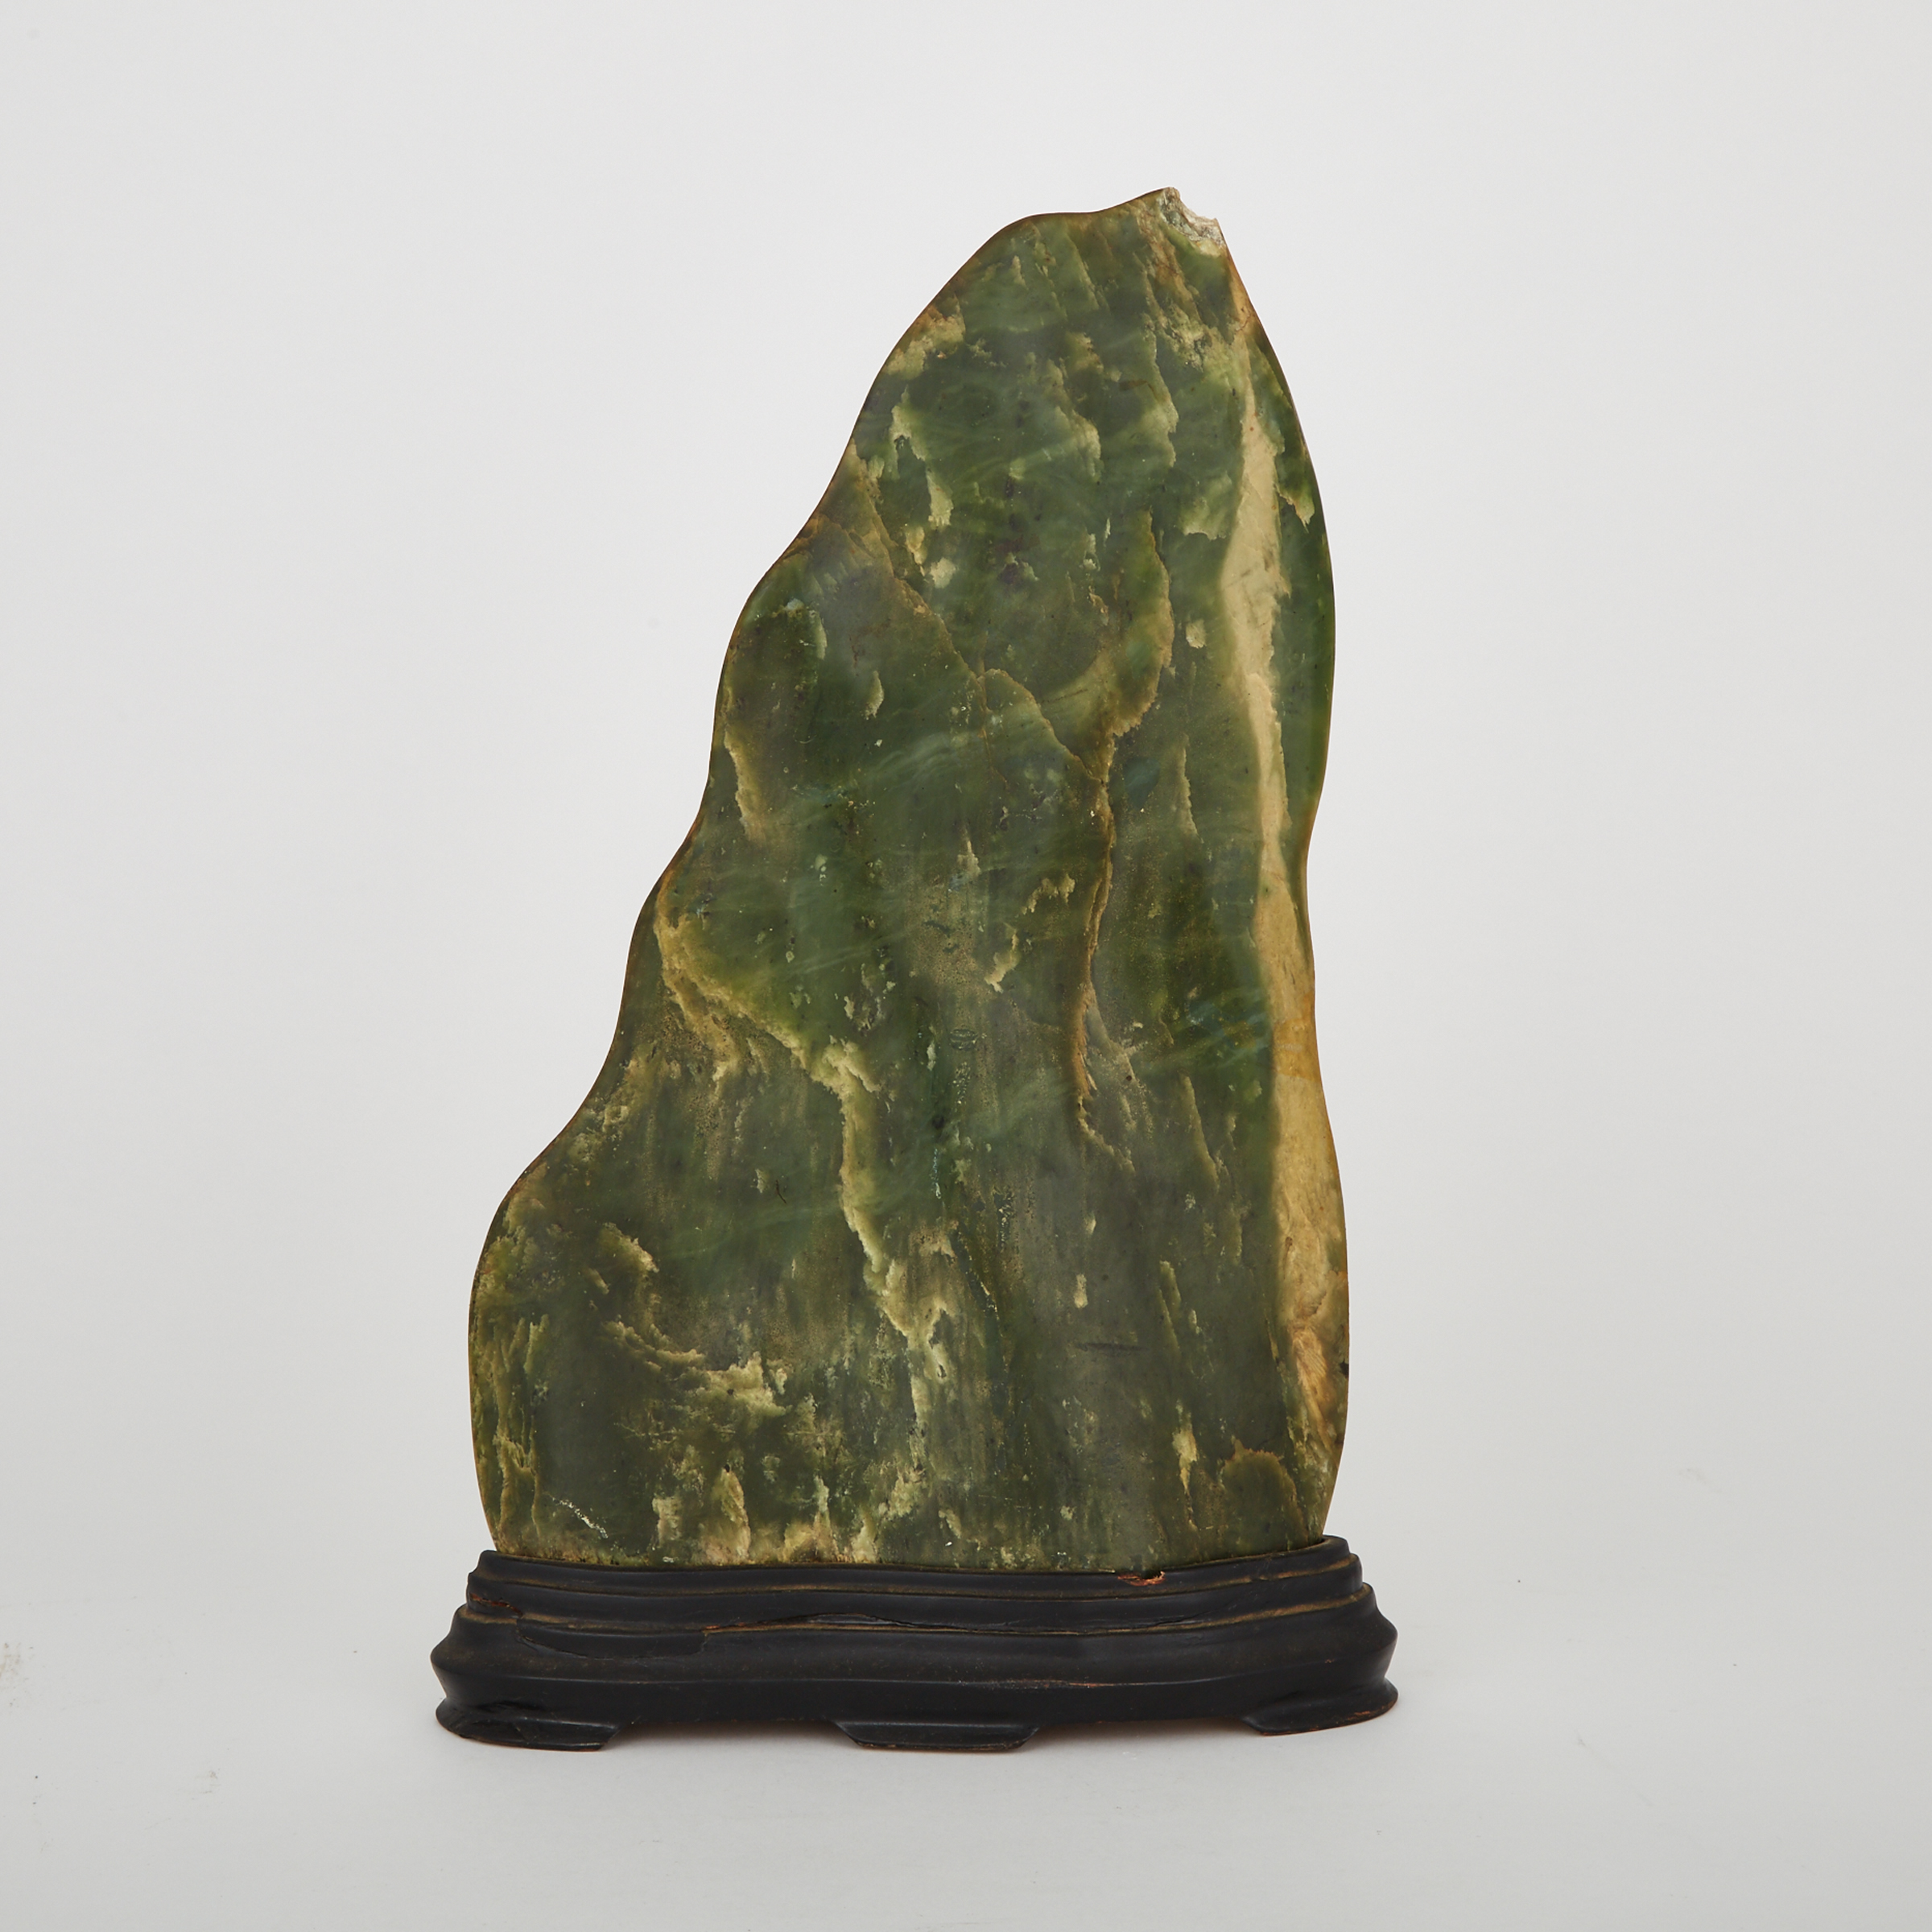 A Large Green and Yellow Hardstone